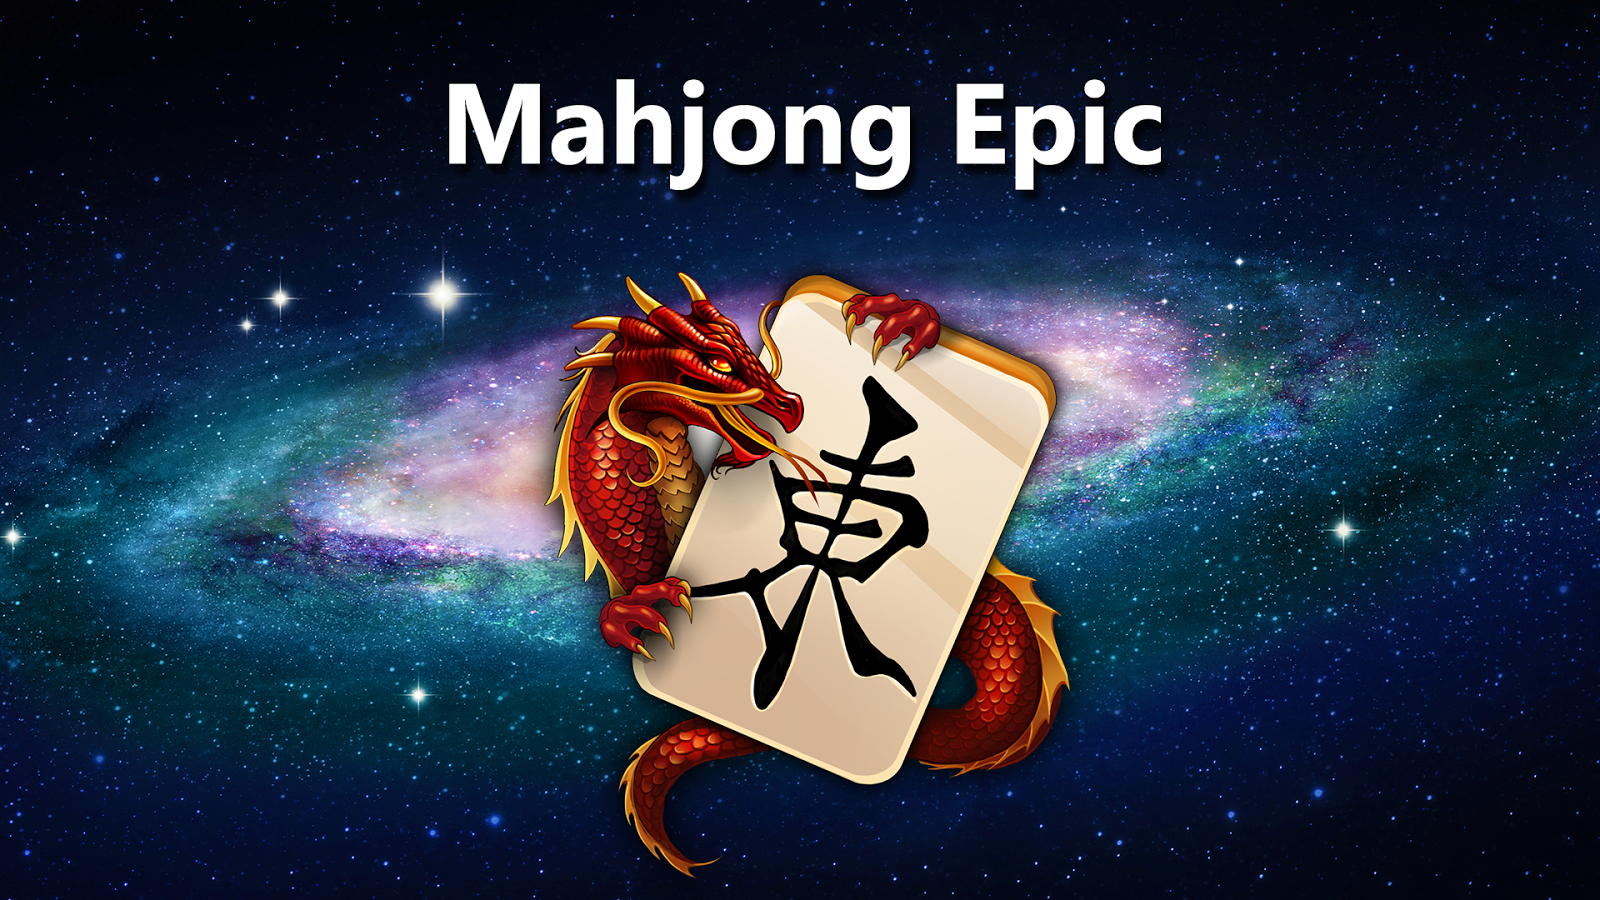 Mahjong Epic Screenshot 4